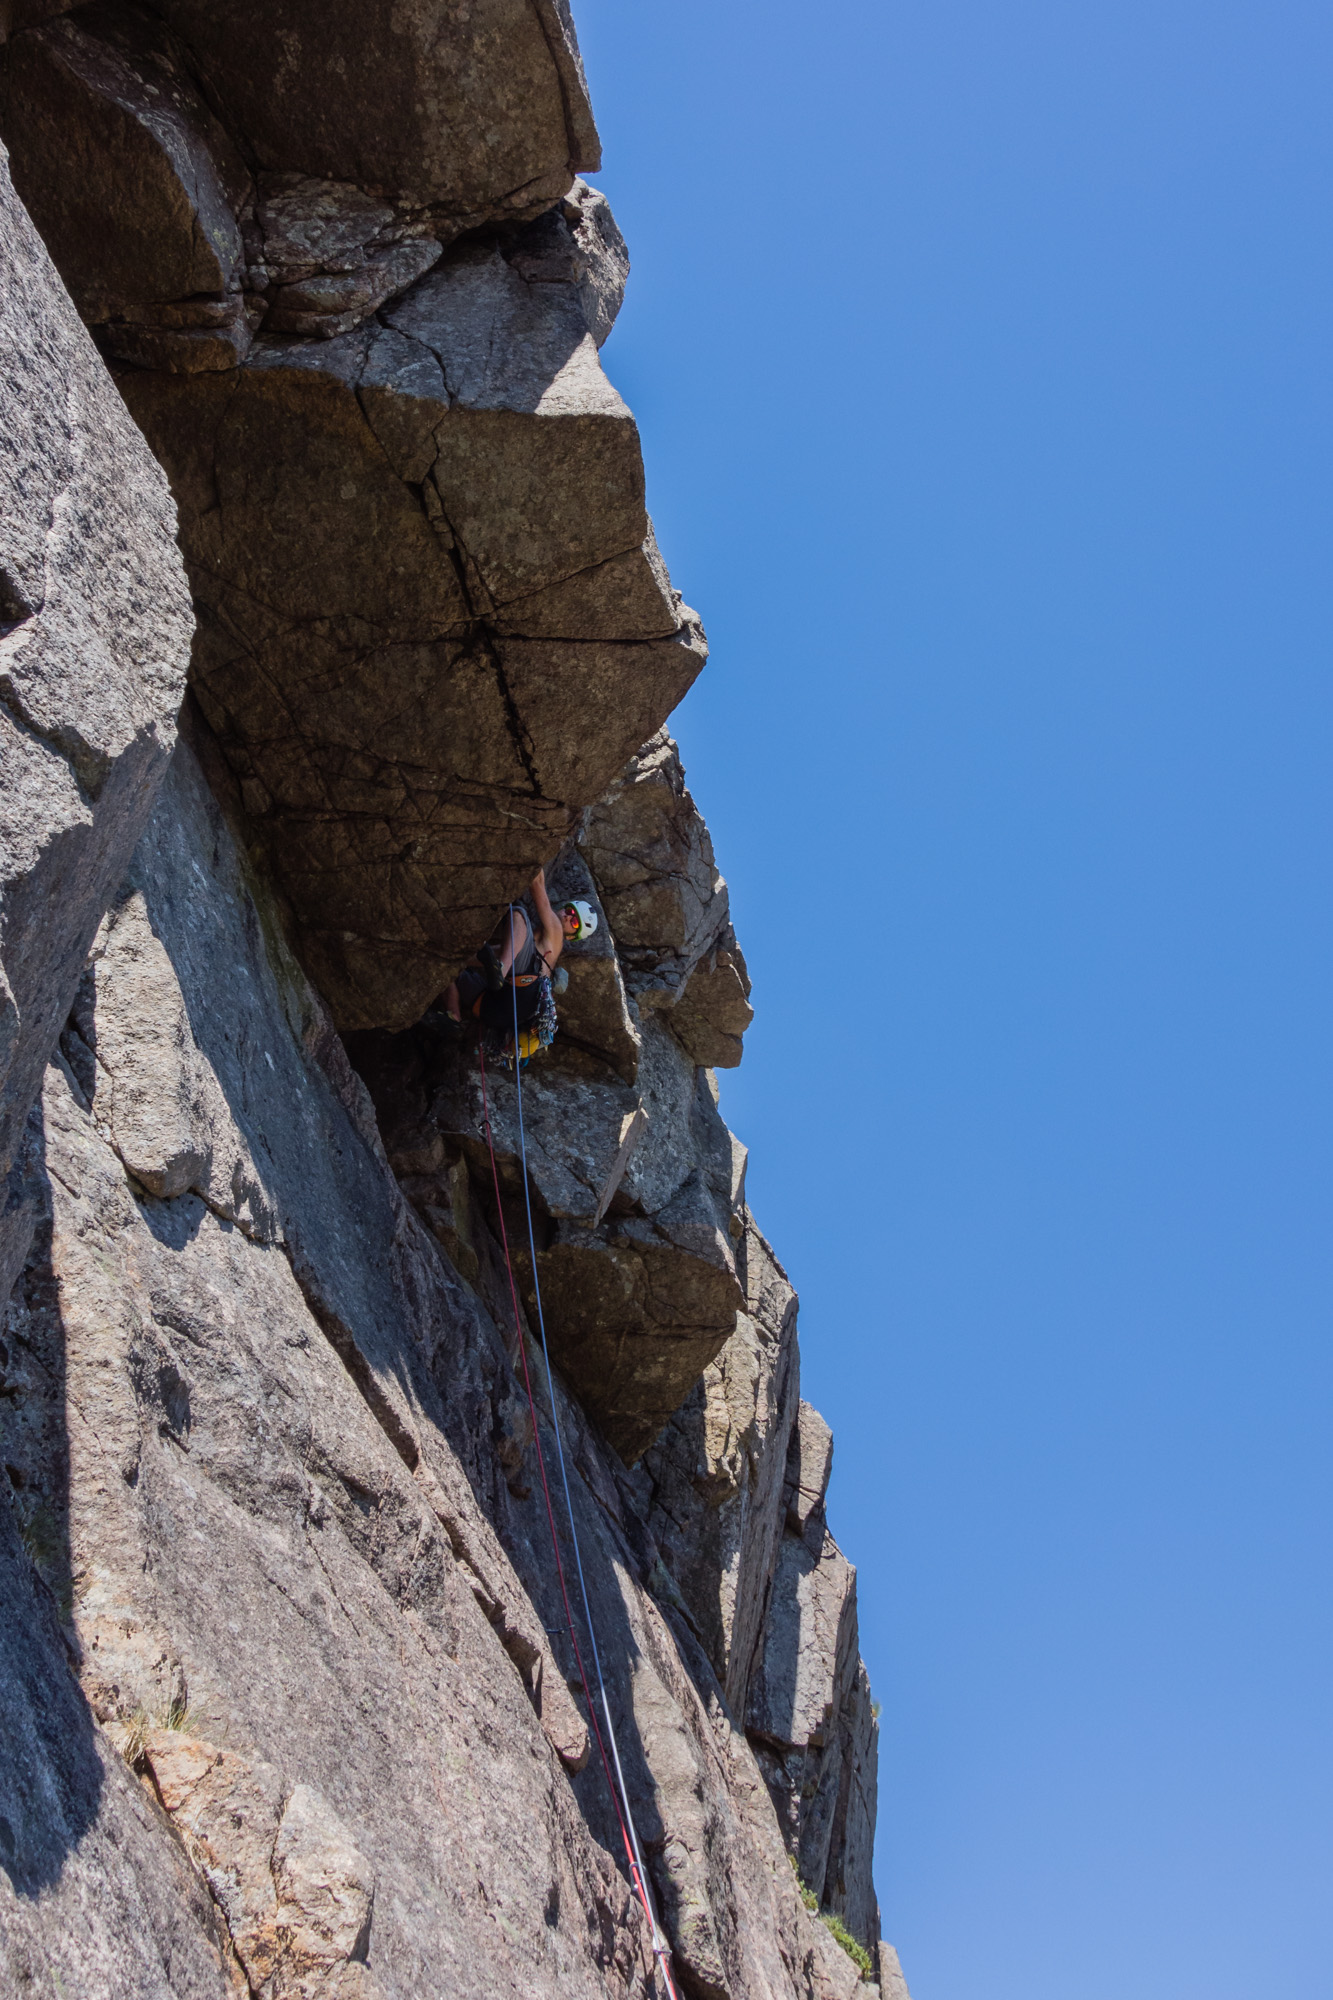 Callum moving smoothly through the steepness. An old peg provides the protection until a little more height is gained